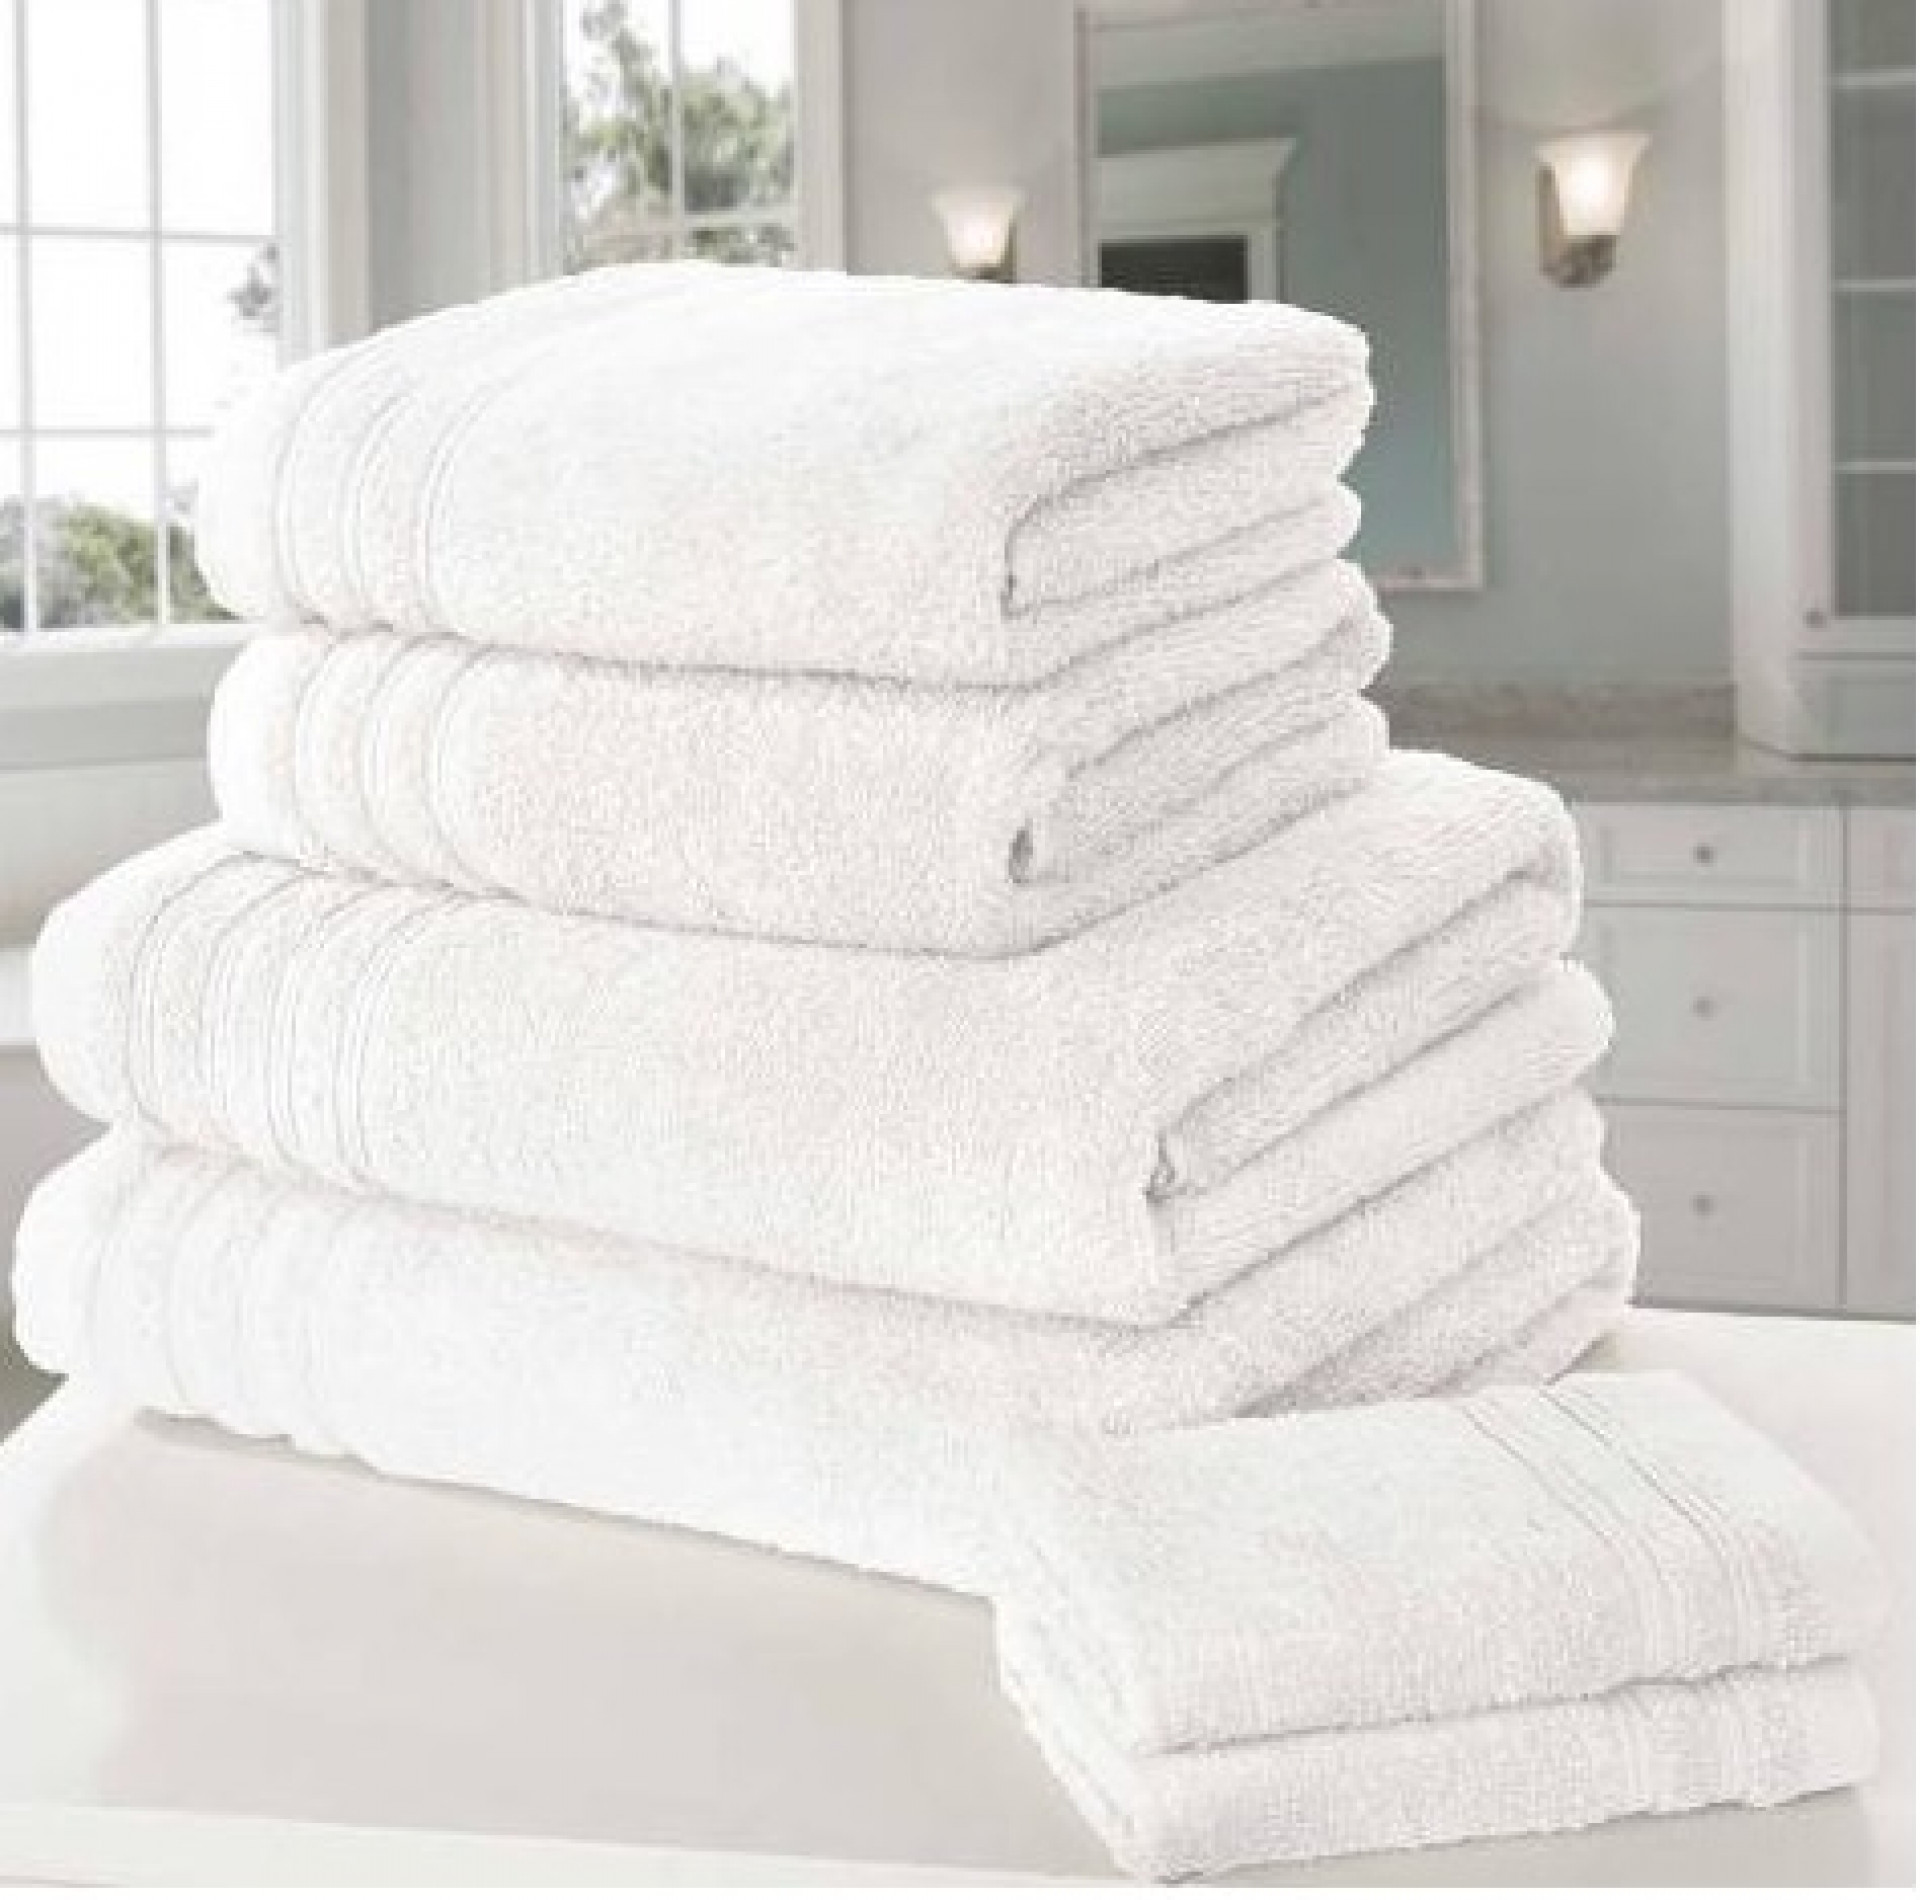 RAPPORT So Soft Pair of Bath Sheets, White